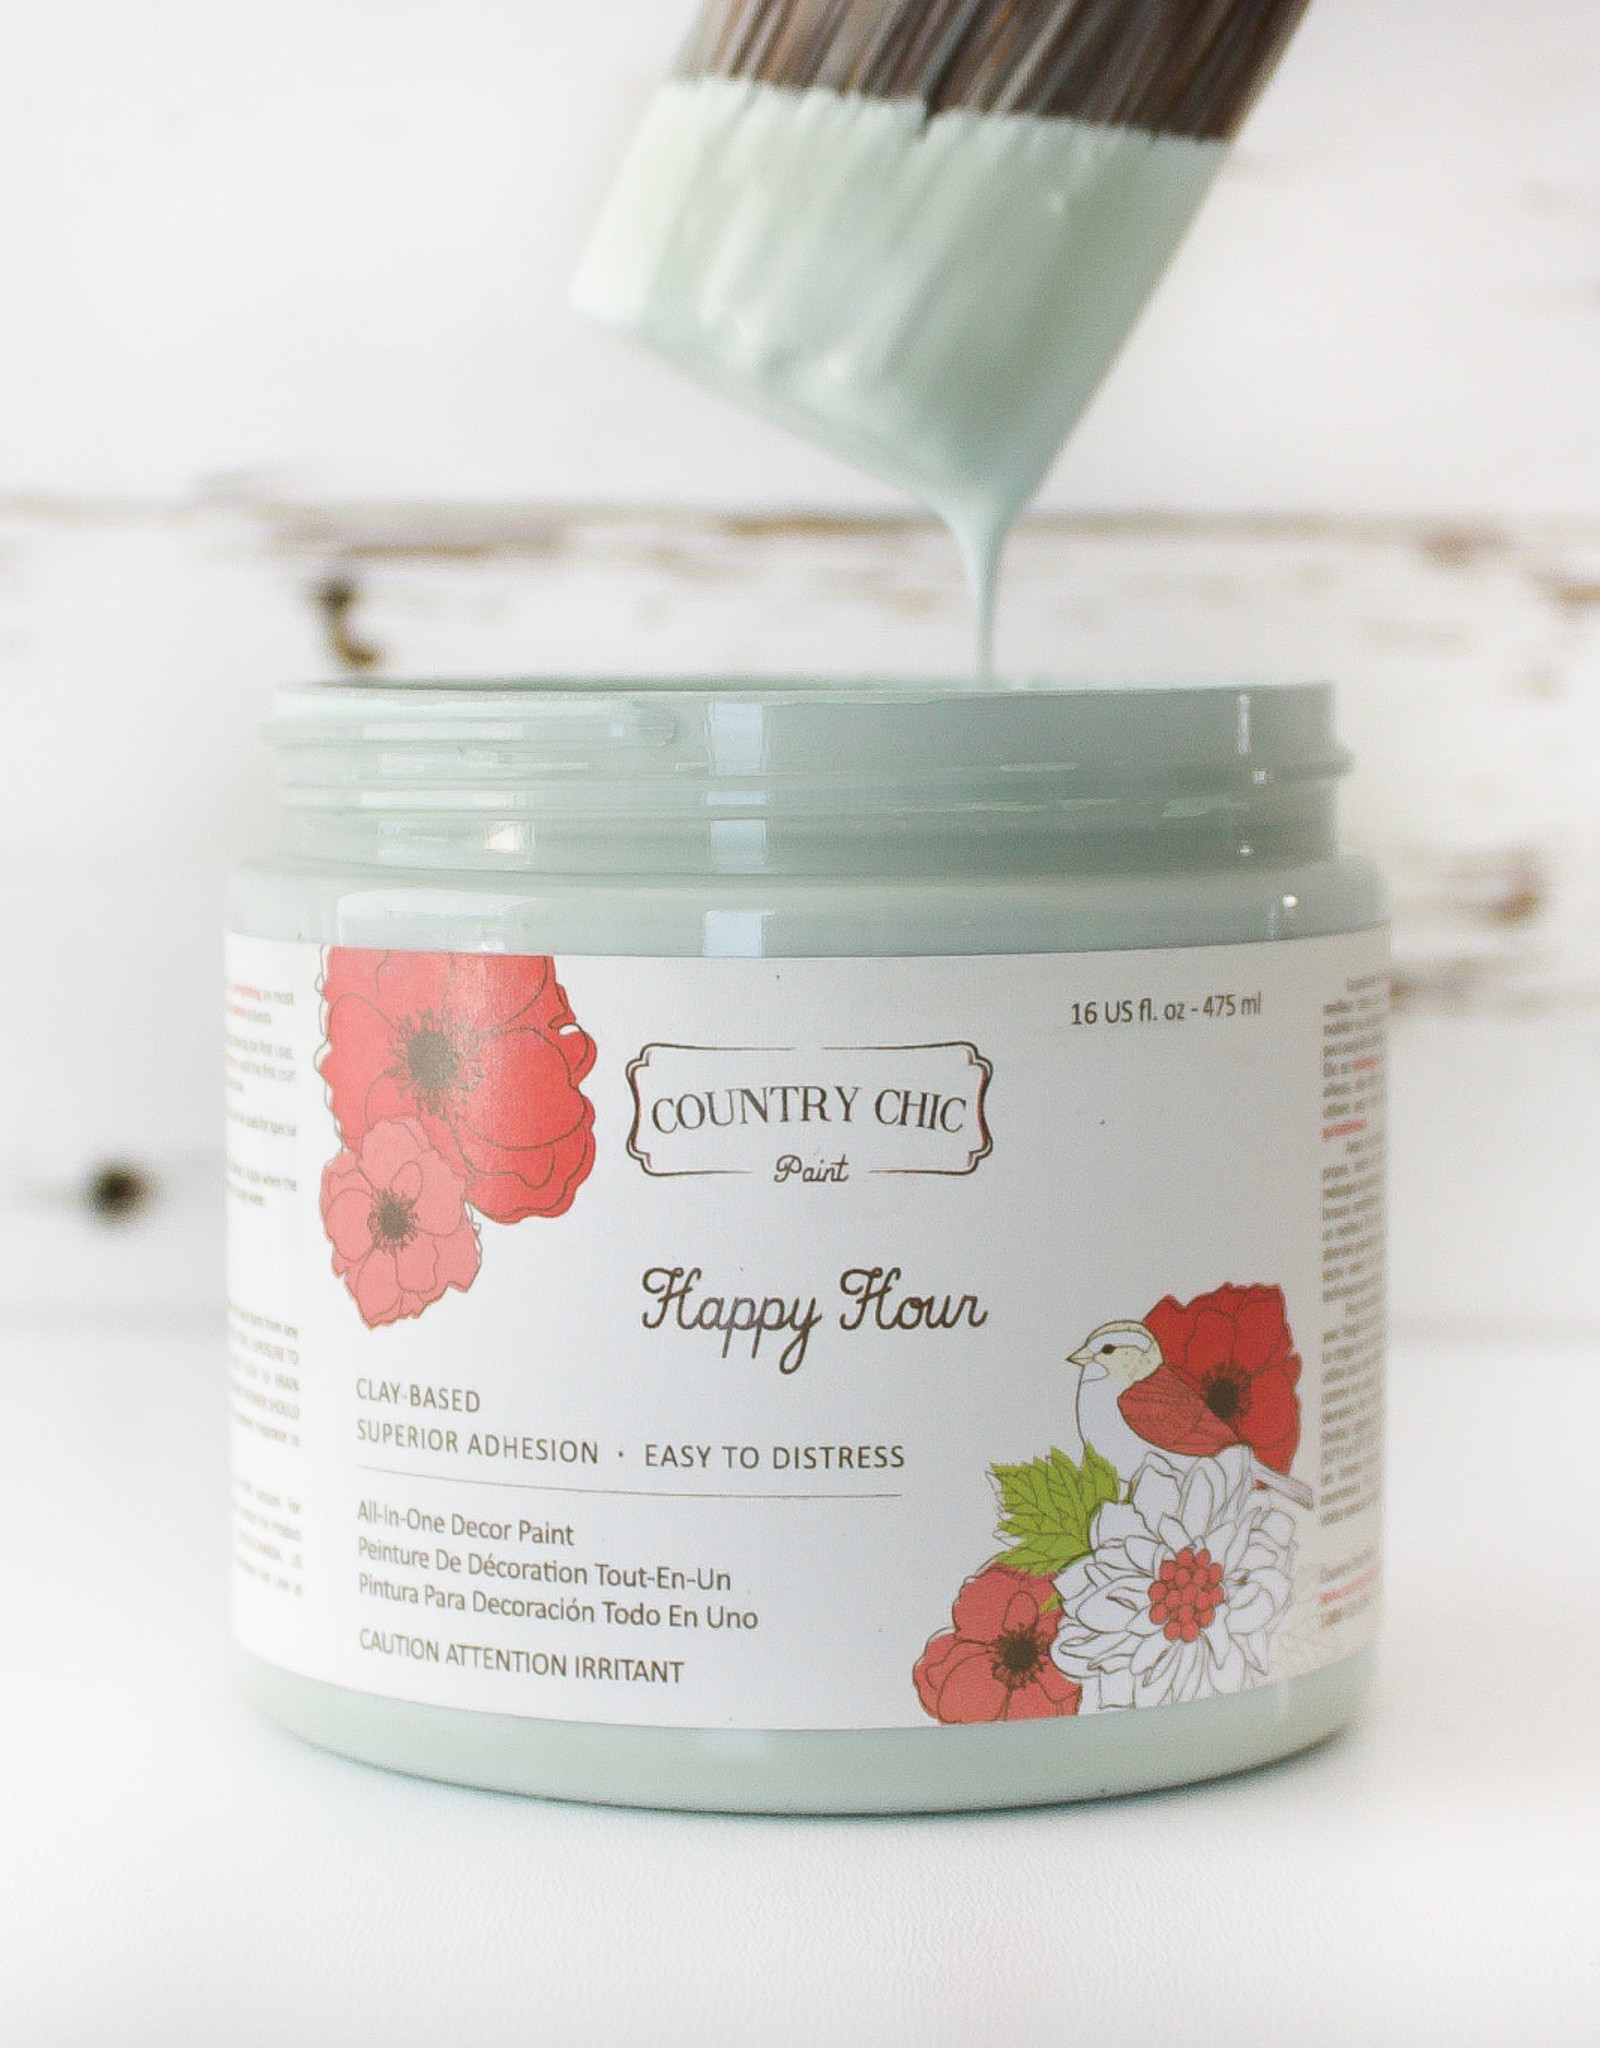 Country Chic Country Chic Paint Sample - 4oz Happy Hour